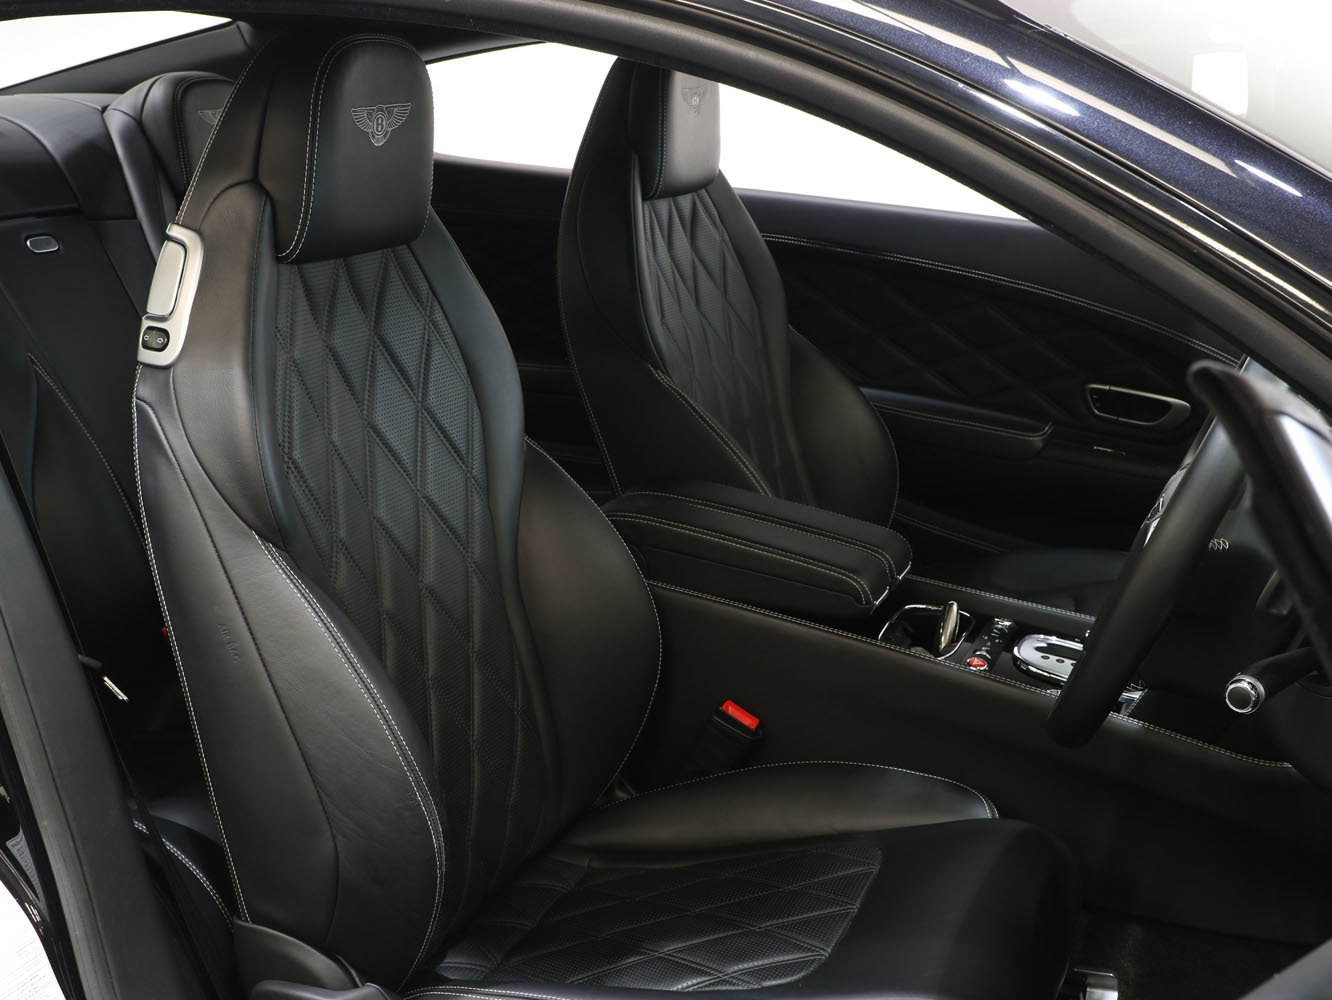 2013 13 13 BENTLEY CONTINENTAL 6.0 W12 GT SPEED AUTO For Sale (picture 4 of 6)